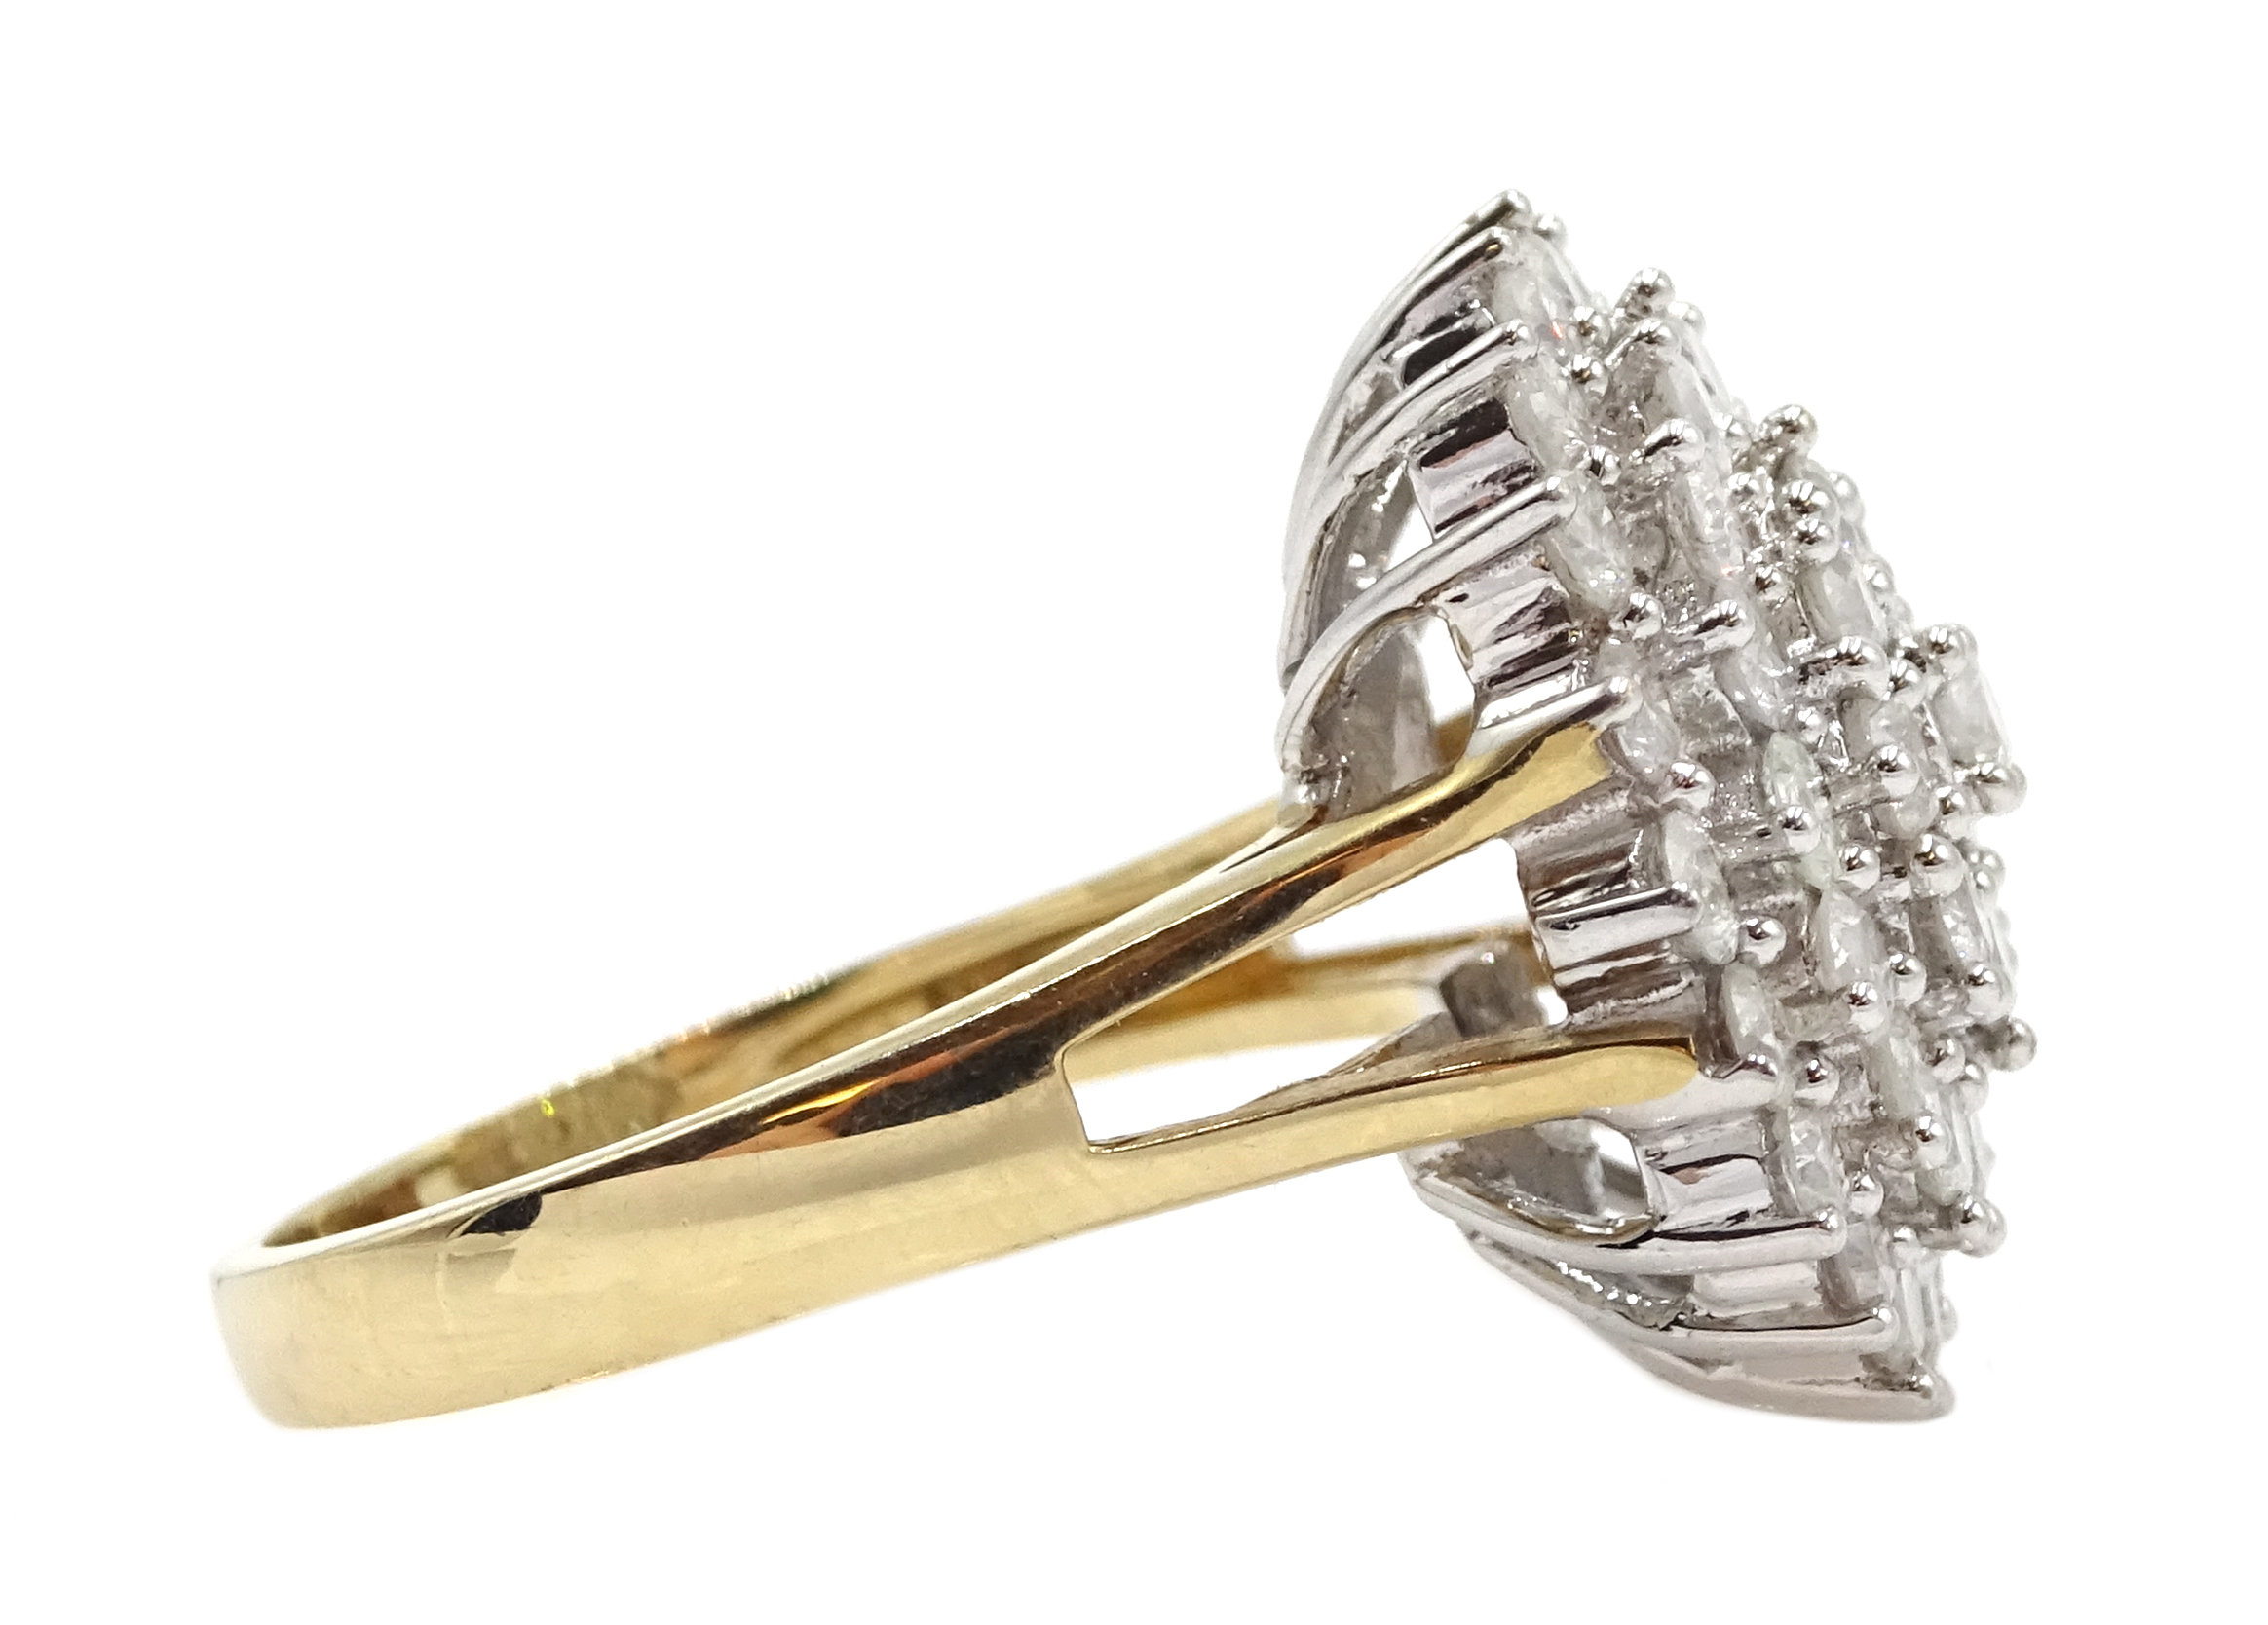 9ct gold cluster ring set with diamonds, diamond total weight approx 2.00 carat, free UK mainland - Image 4 of 6